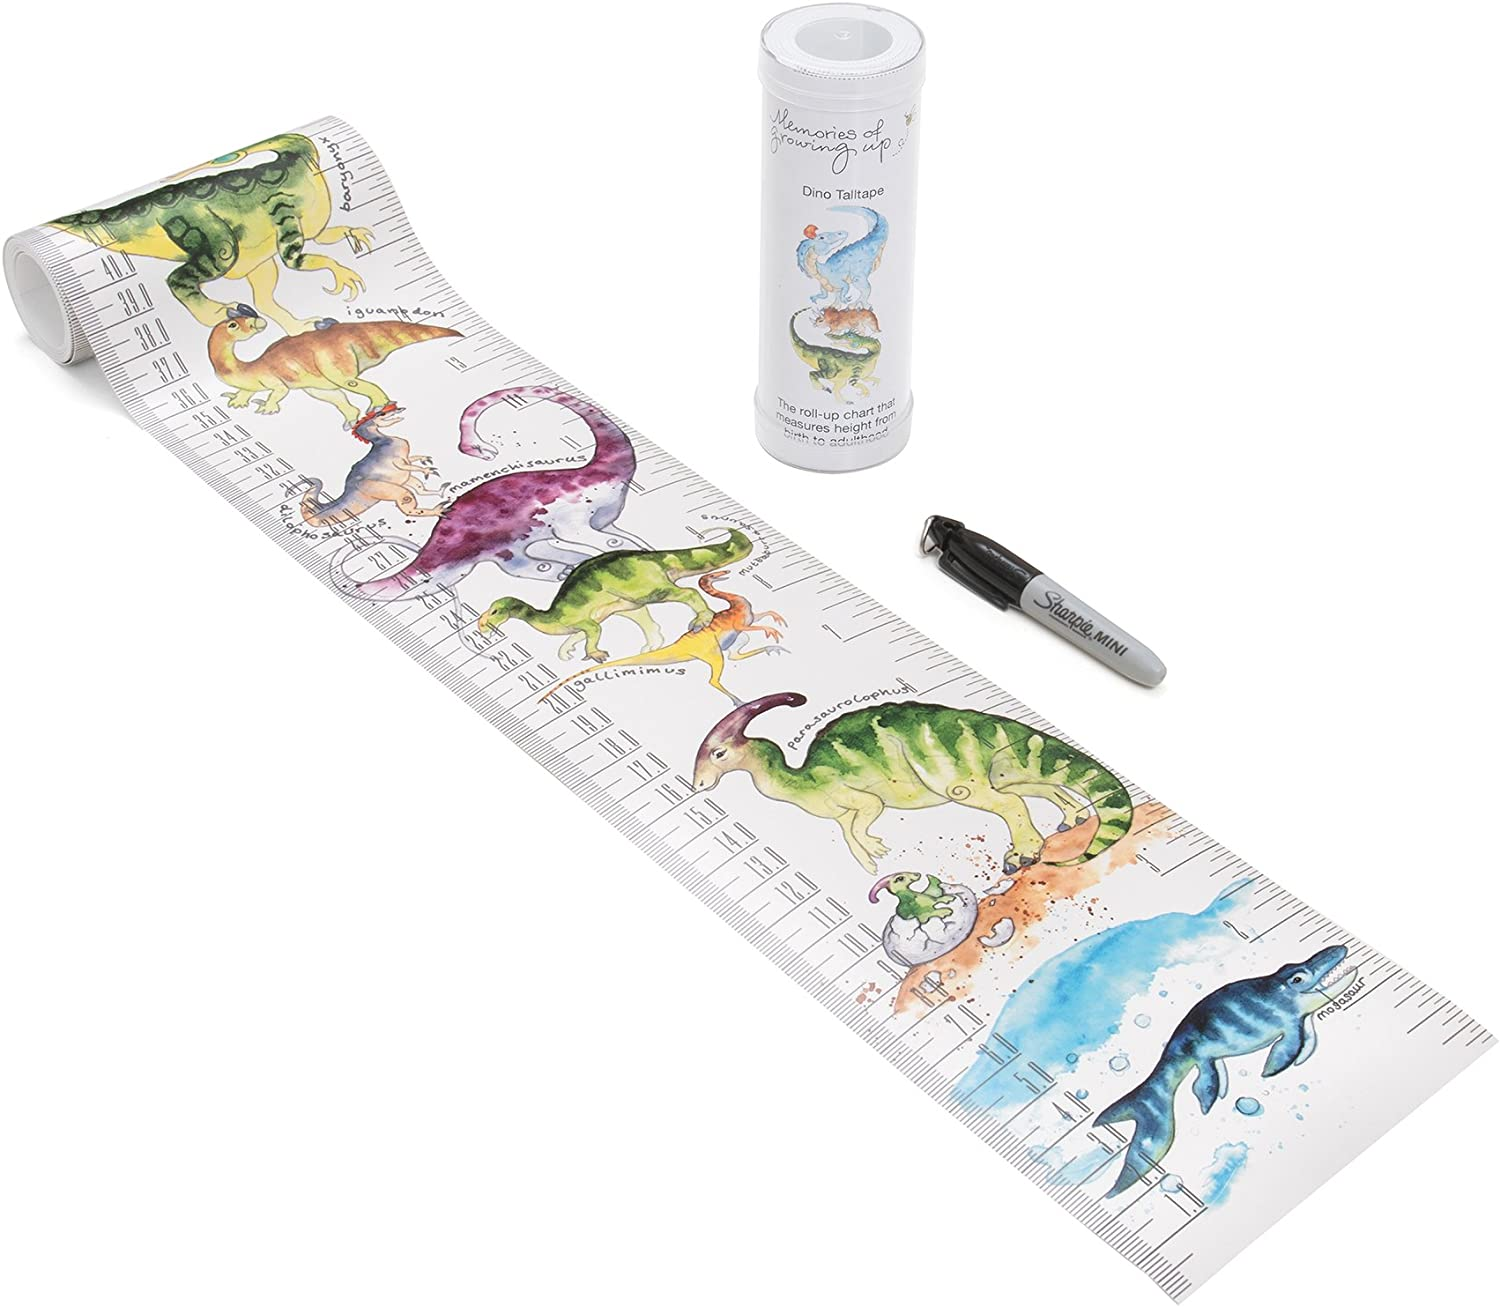 Roll-up Height Chart Plus 1 Sharpie Marker Pen to Measure Children from Birth Portable Talltape, Animals Choice of 10 Designs. TALLTAPE 10 Designs A Memento for Life